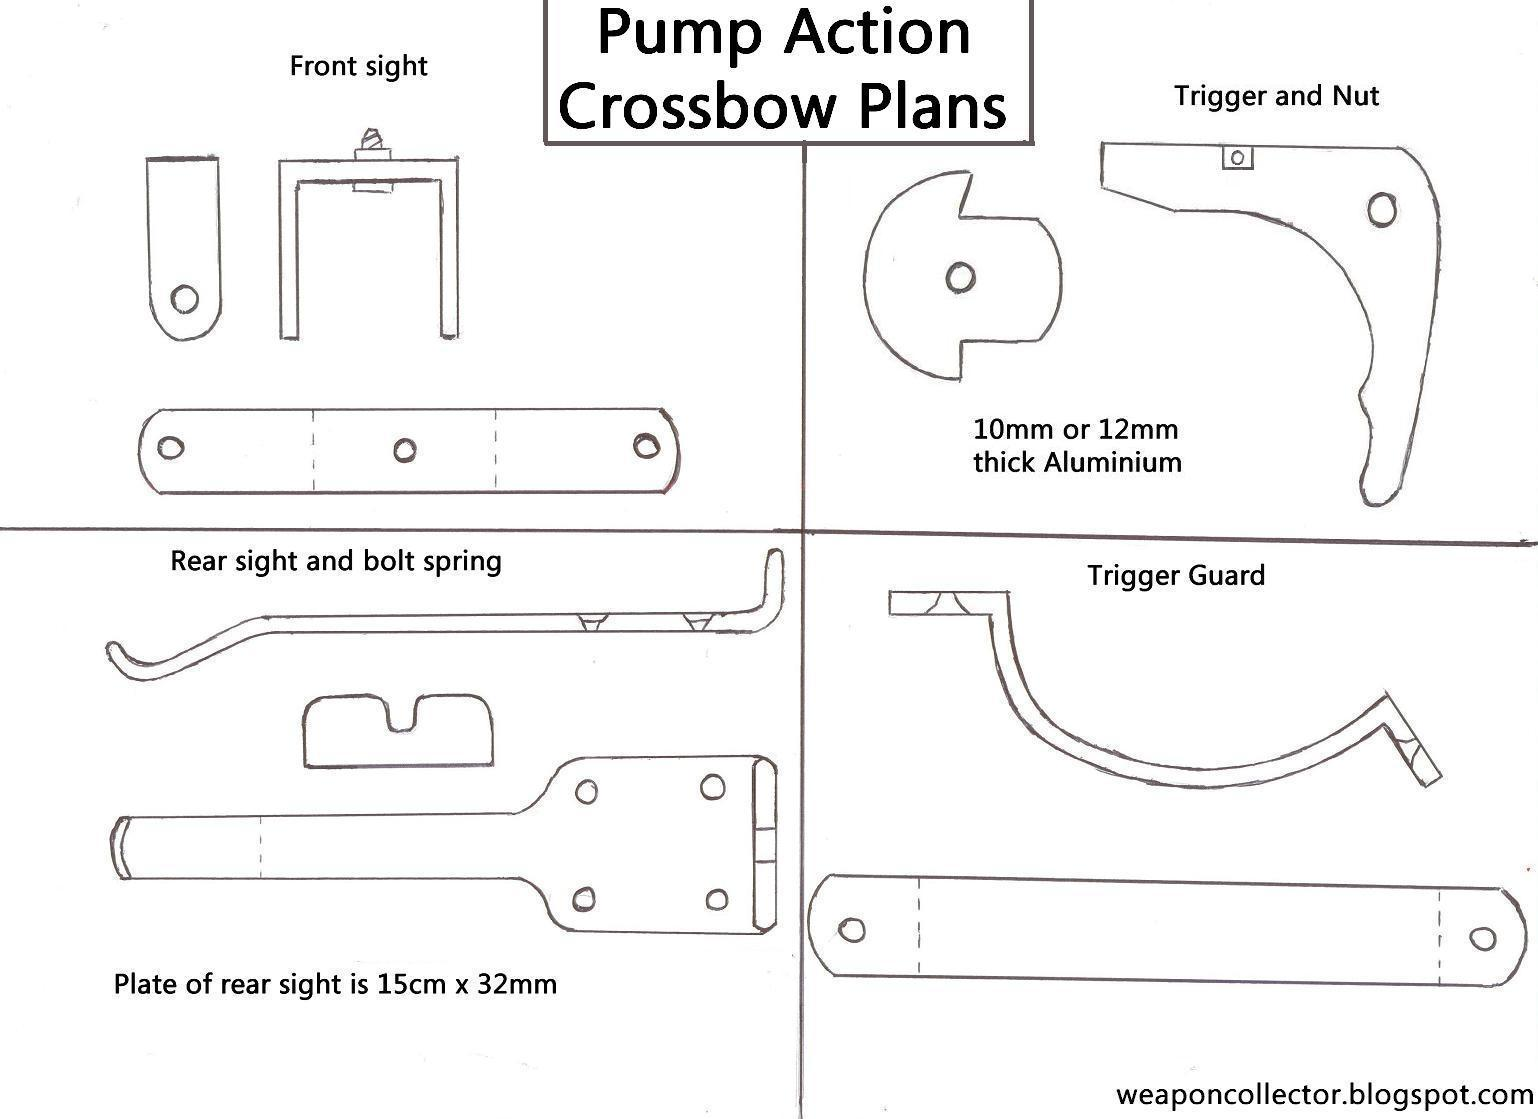 Pump Action Crossbow Plans